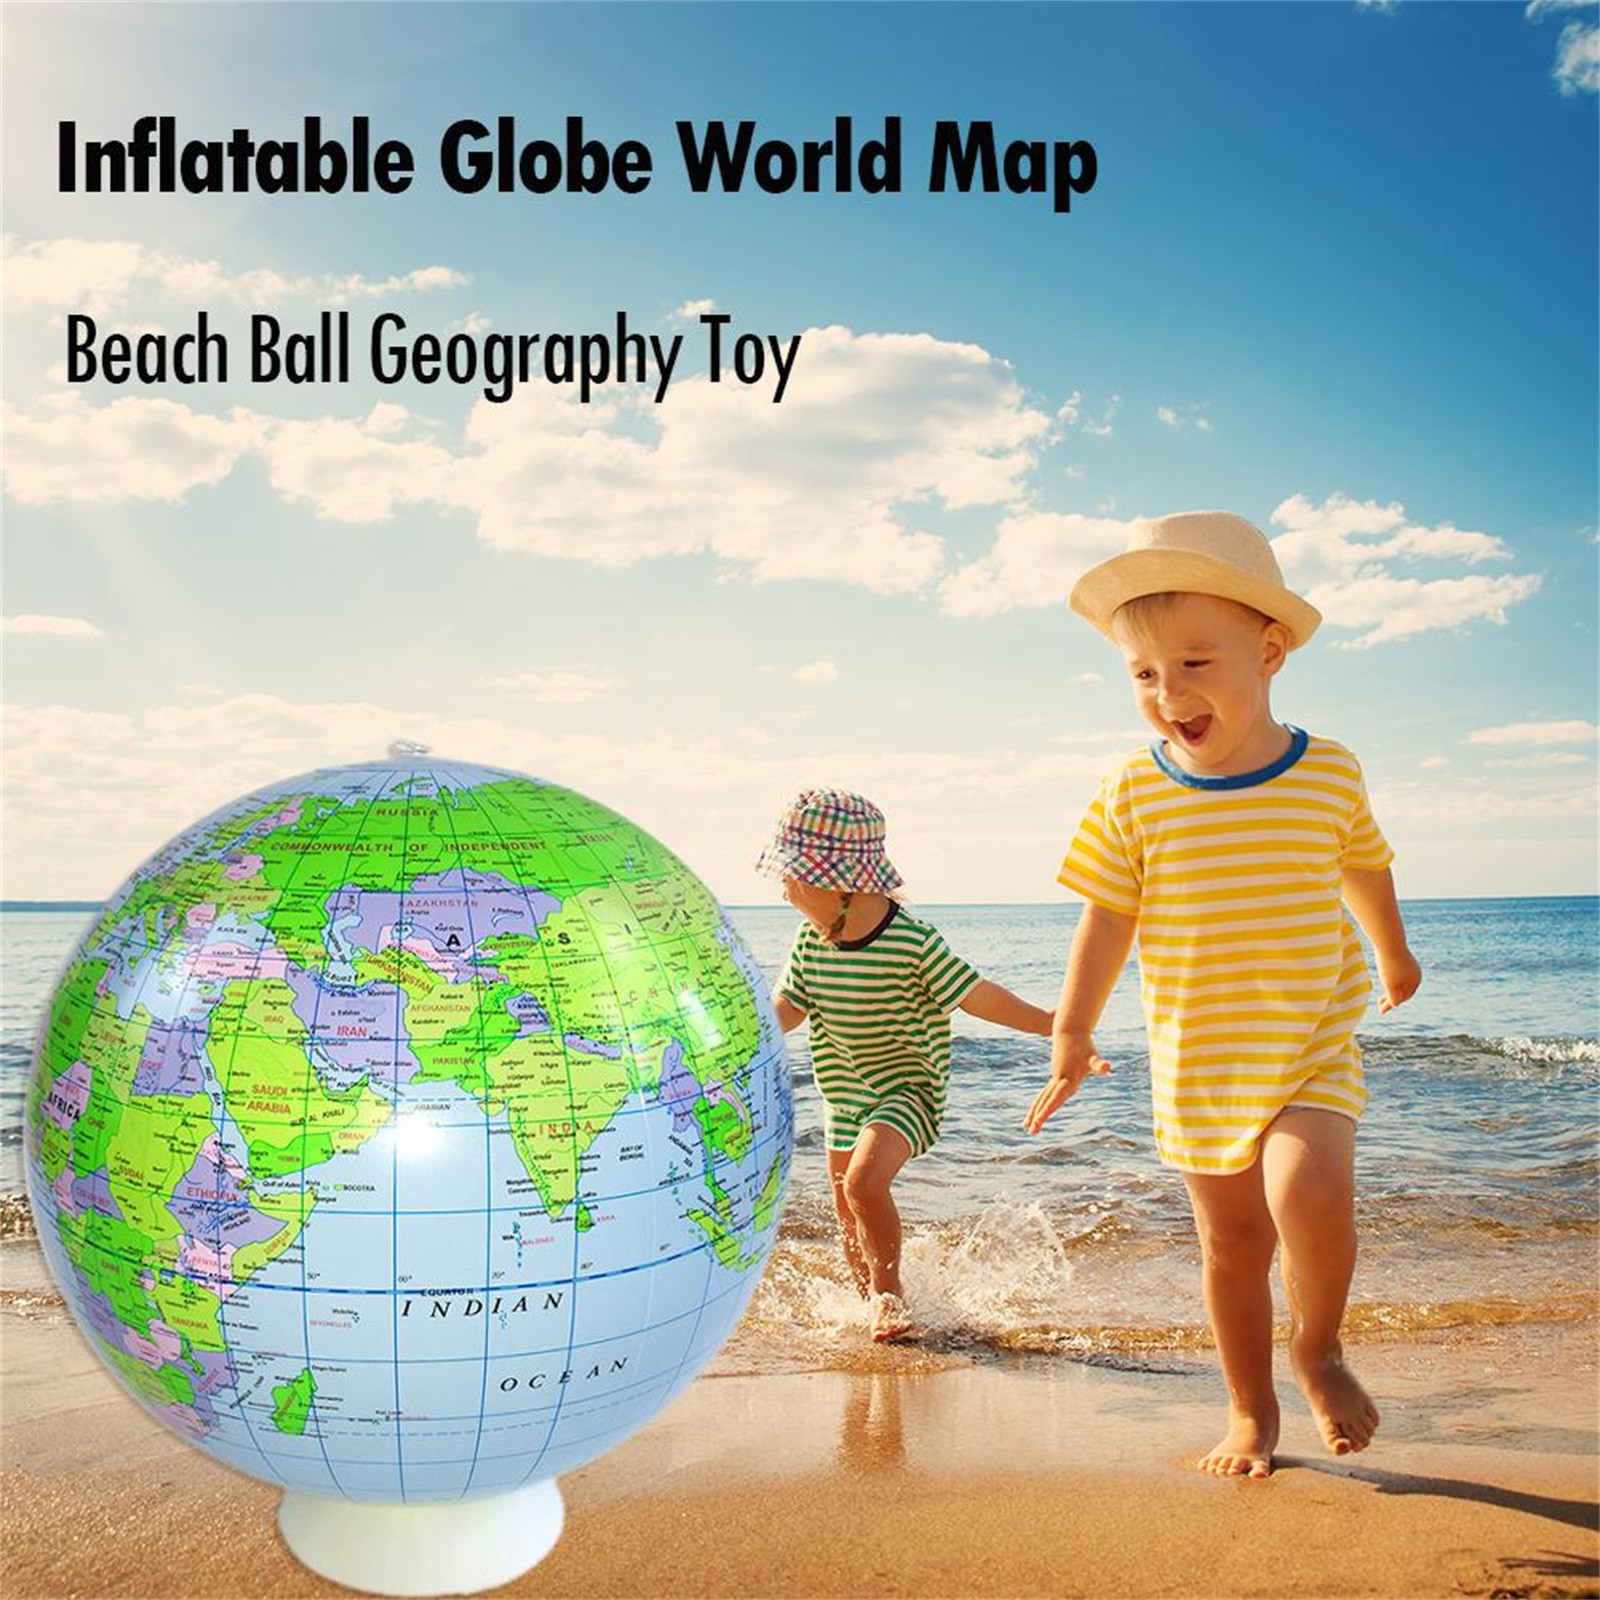 2021 toys for children 16 Inch Inflatable Glob e For Beach Swimming Pool Decoration Or Teaching gifts игрушки для девочек